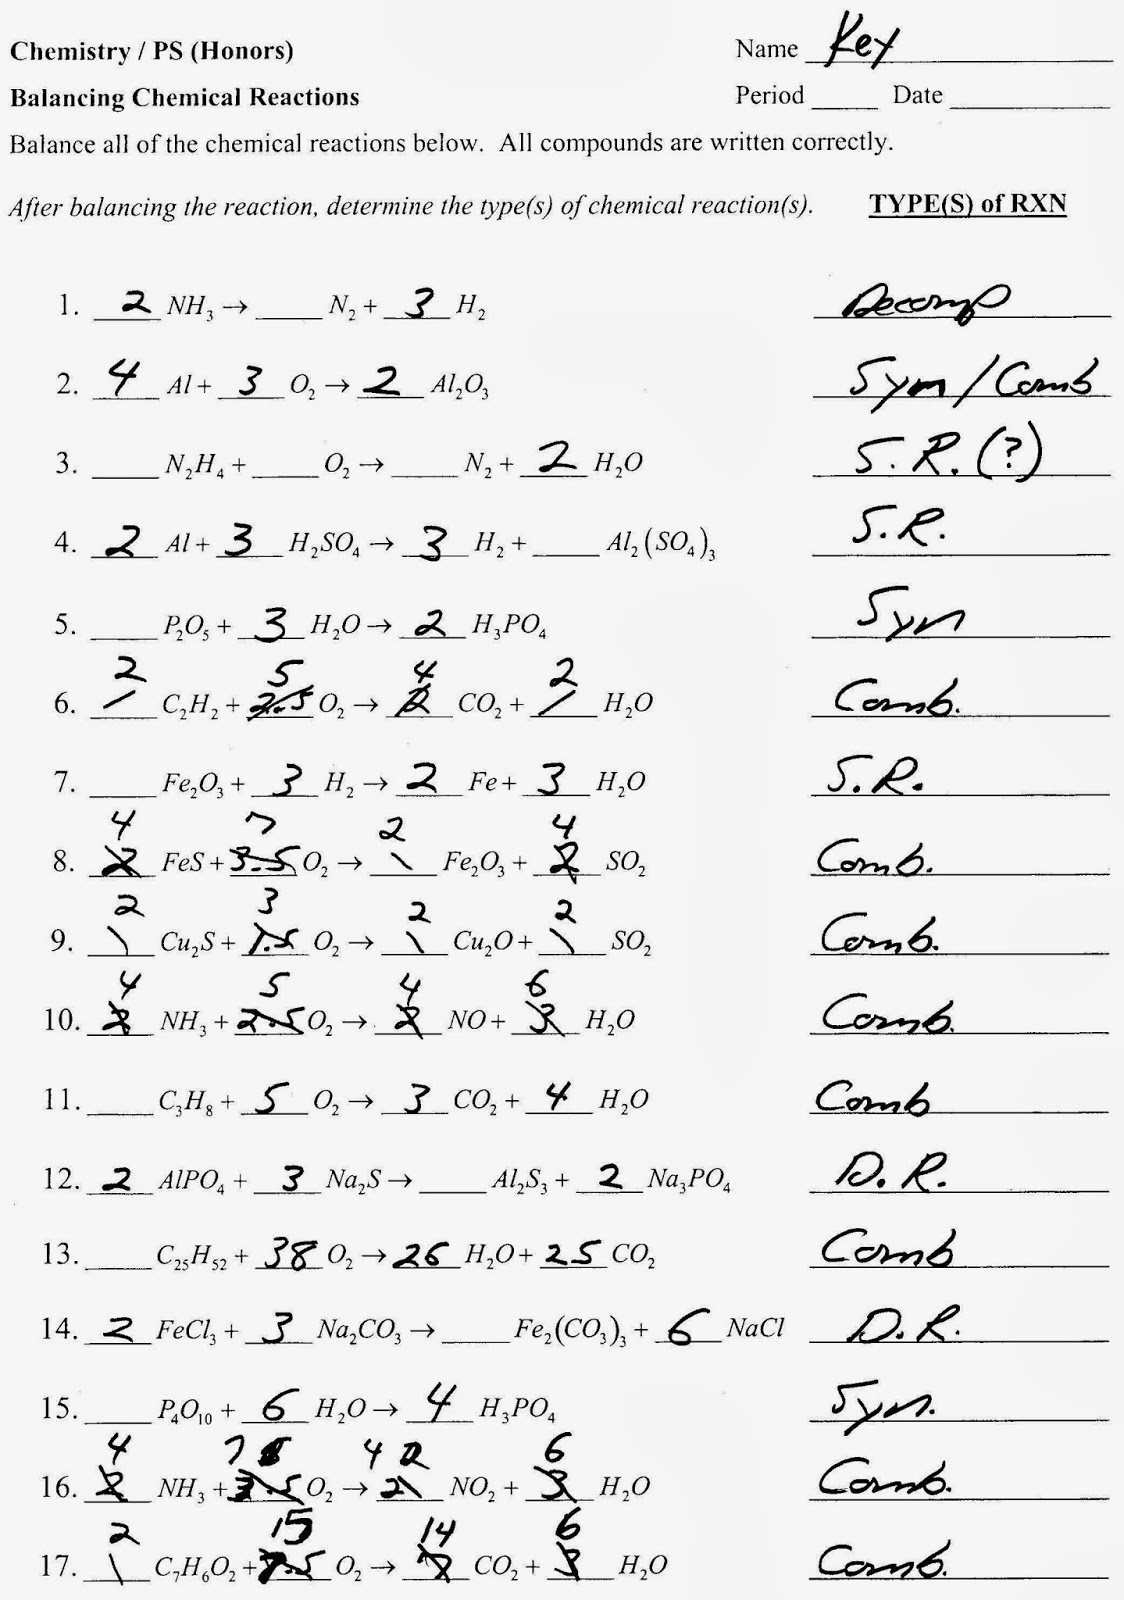 Aldiablosus  Splendid Balancing Chemical Equations Worksheets Balancing Chemical  With Great Balancing Chemical Equations Worksheet Answer Key On Chemistry Double With Amusing Latitude And Longitude Worksheets For Th Grade Also Ordering Decimals Worksheet Th Grade In Addition Th Grade Order Of Operations Worksheet And Business Letter Worksheet As Well As Free Printable High School English Worksheets Additionally Ratio Word Problems Worksheet Th Grade From Letstalkhiphopus With Aldiablosus  Great Balancing Chemical Equations Worksheets Balancing Chemical  With Amusing Balancing Chemical Equations Worksheet Answer Key On Chemistry Double And Splendid Latitude And Longitude Worksheets For Th Grade Also Ordering Decimals Worksheet Th Grade In Addition Th Grade Order Of Operations Worksheet From Letstalkhiphopus